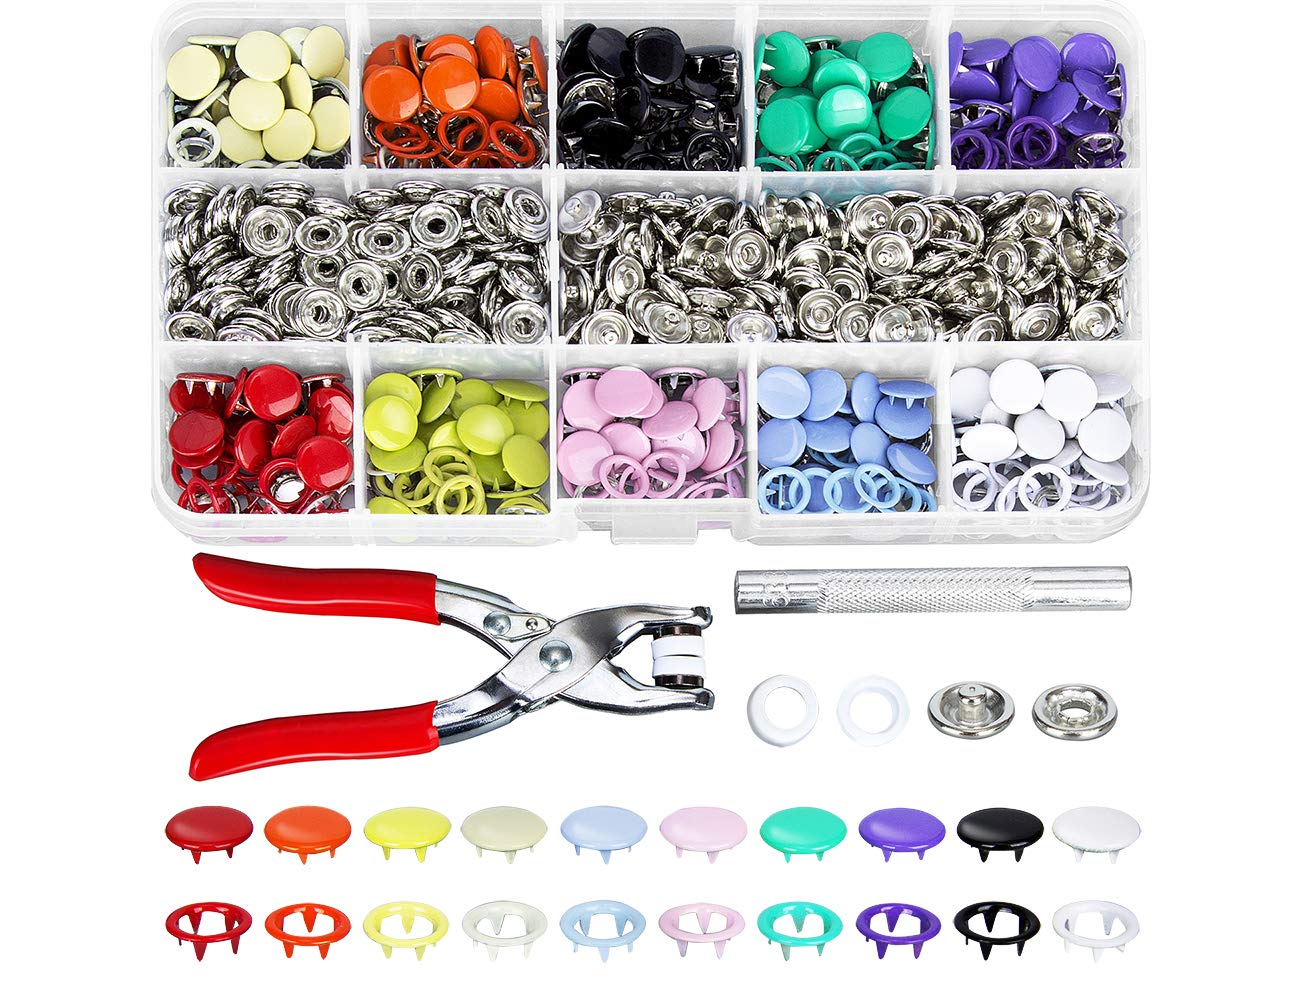 for DIY Baby Clothing and Thin Clothing Snap Fastener Grommets Kit SROL 200 Sets Grommets Kit Snap Fastener Tool,9.5mm 10 Colors Metal Prong Ring Button